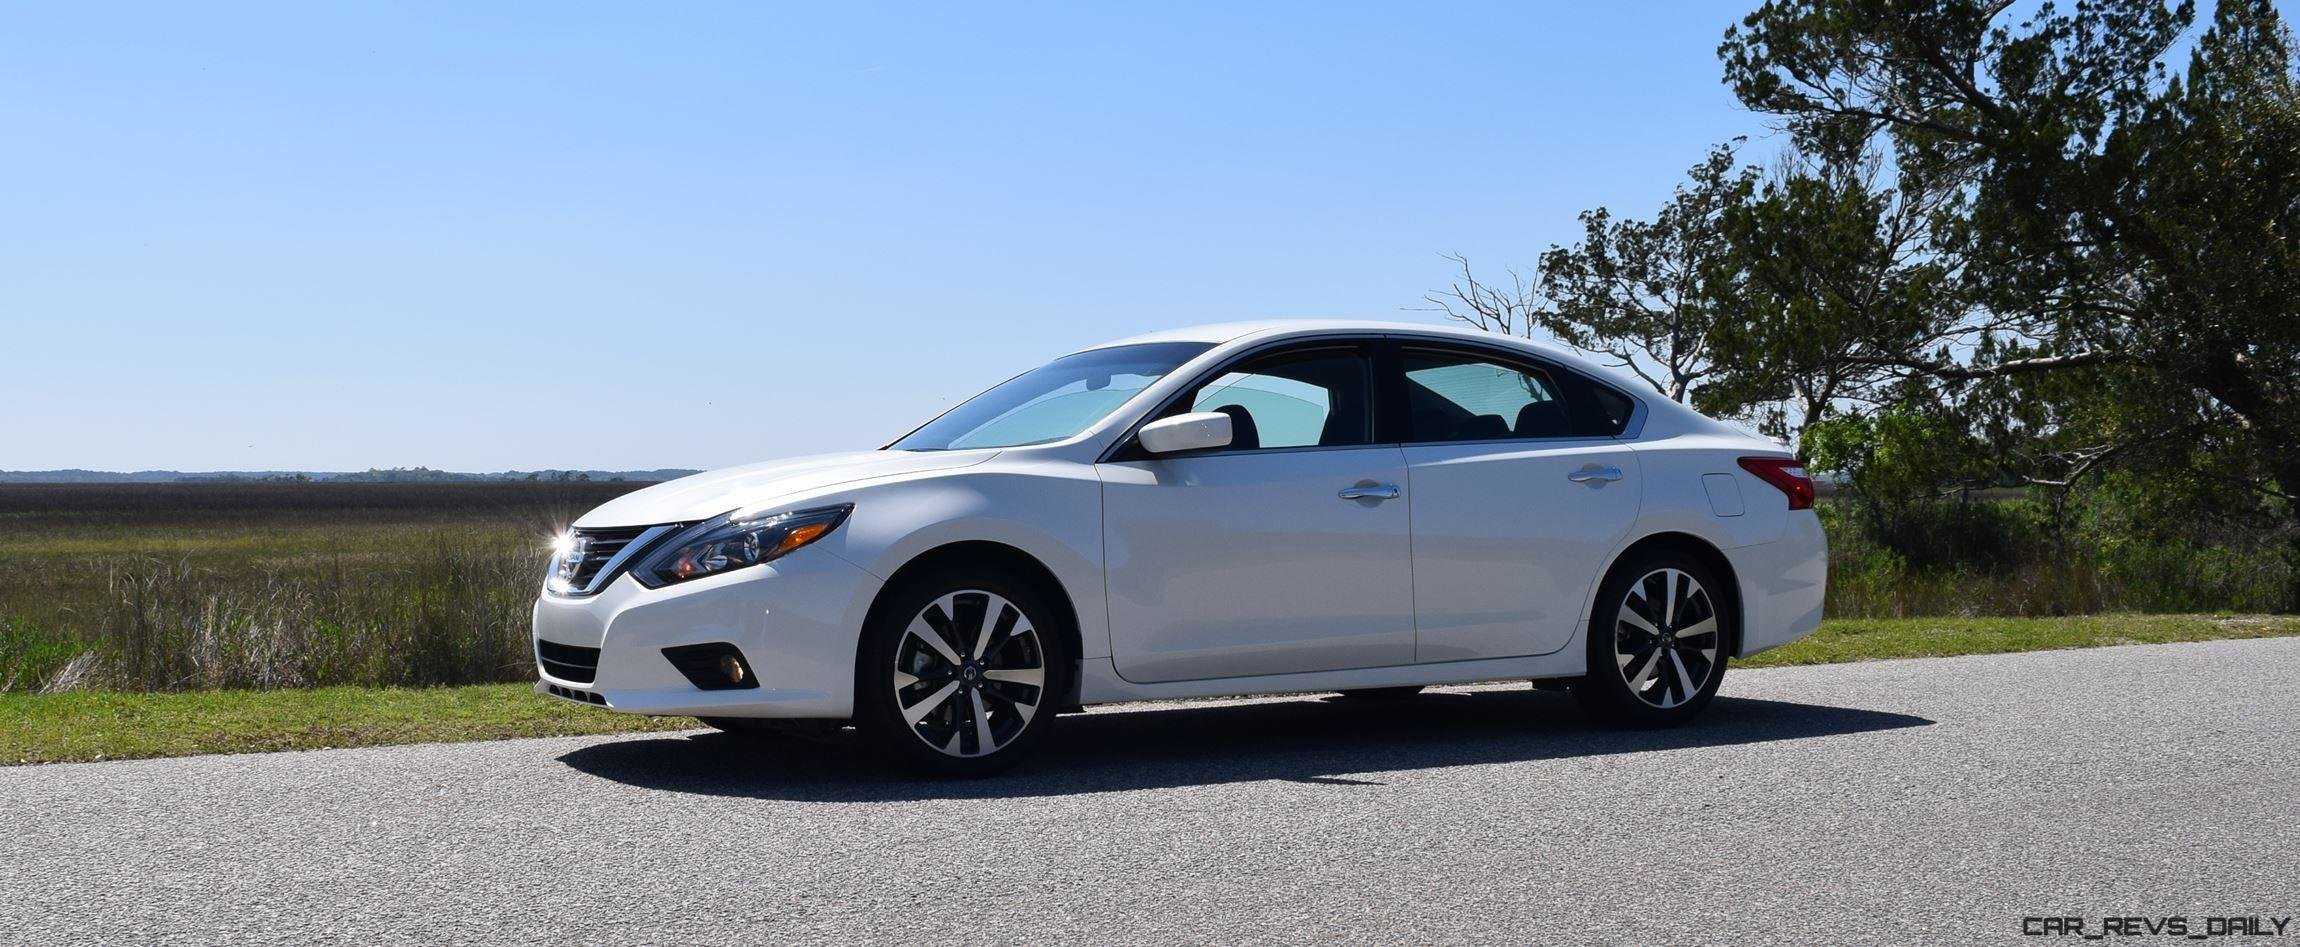 Latest 2016 Nissan Altima 2 5 Sr Hd Road Test Review Drive Video Free Download